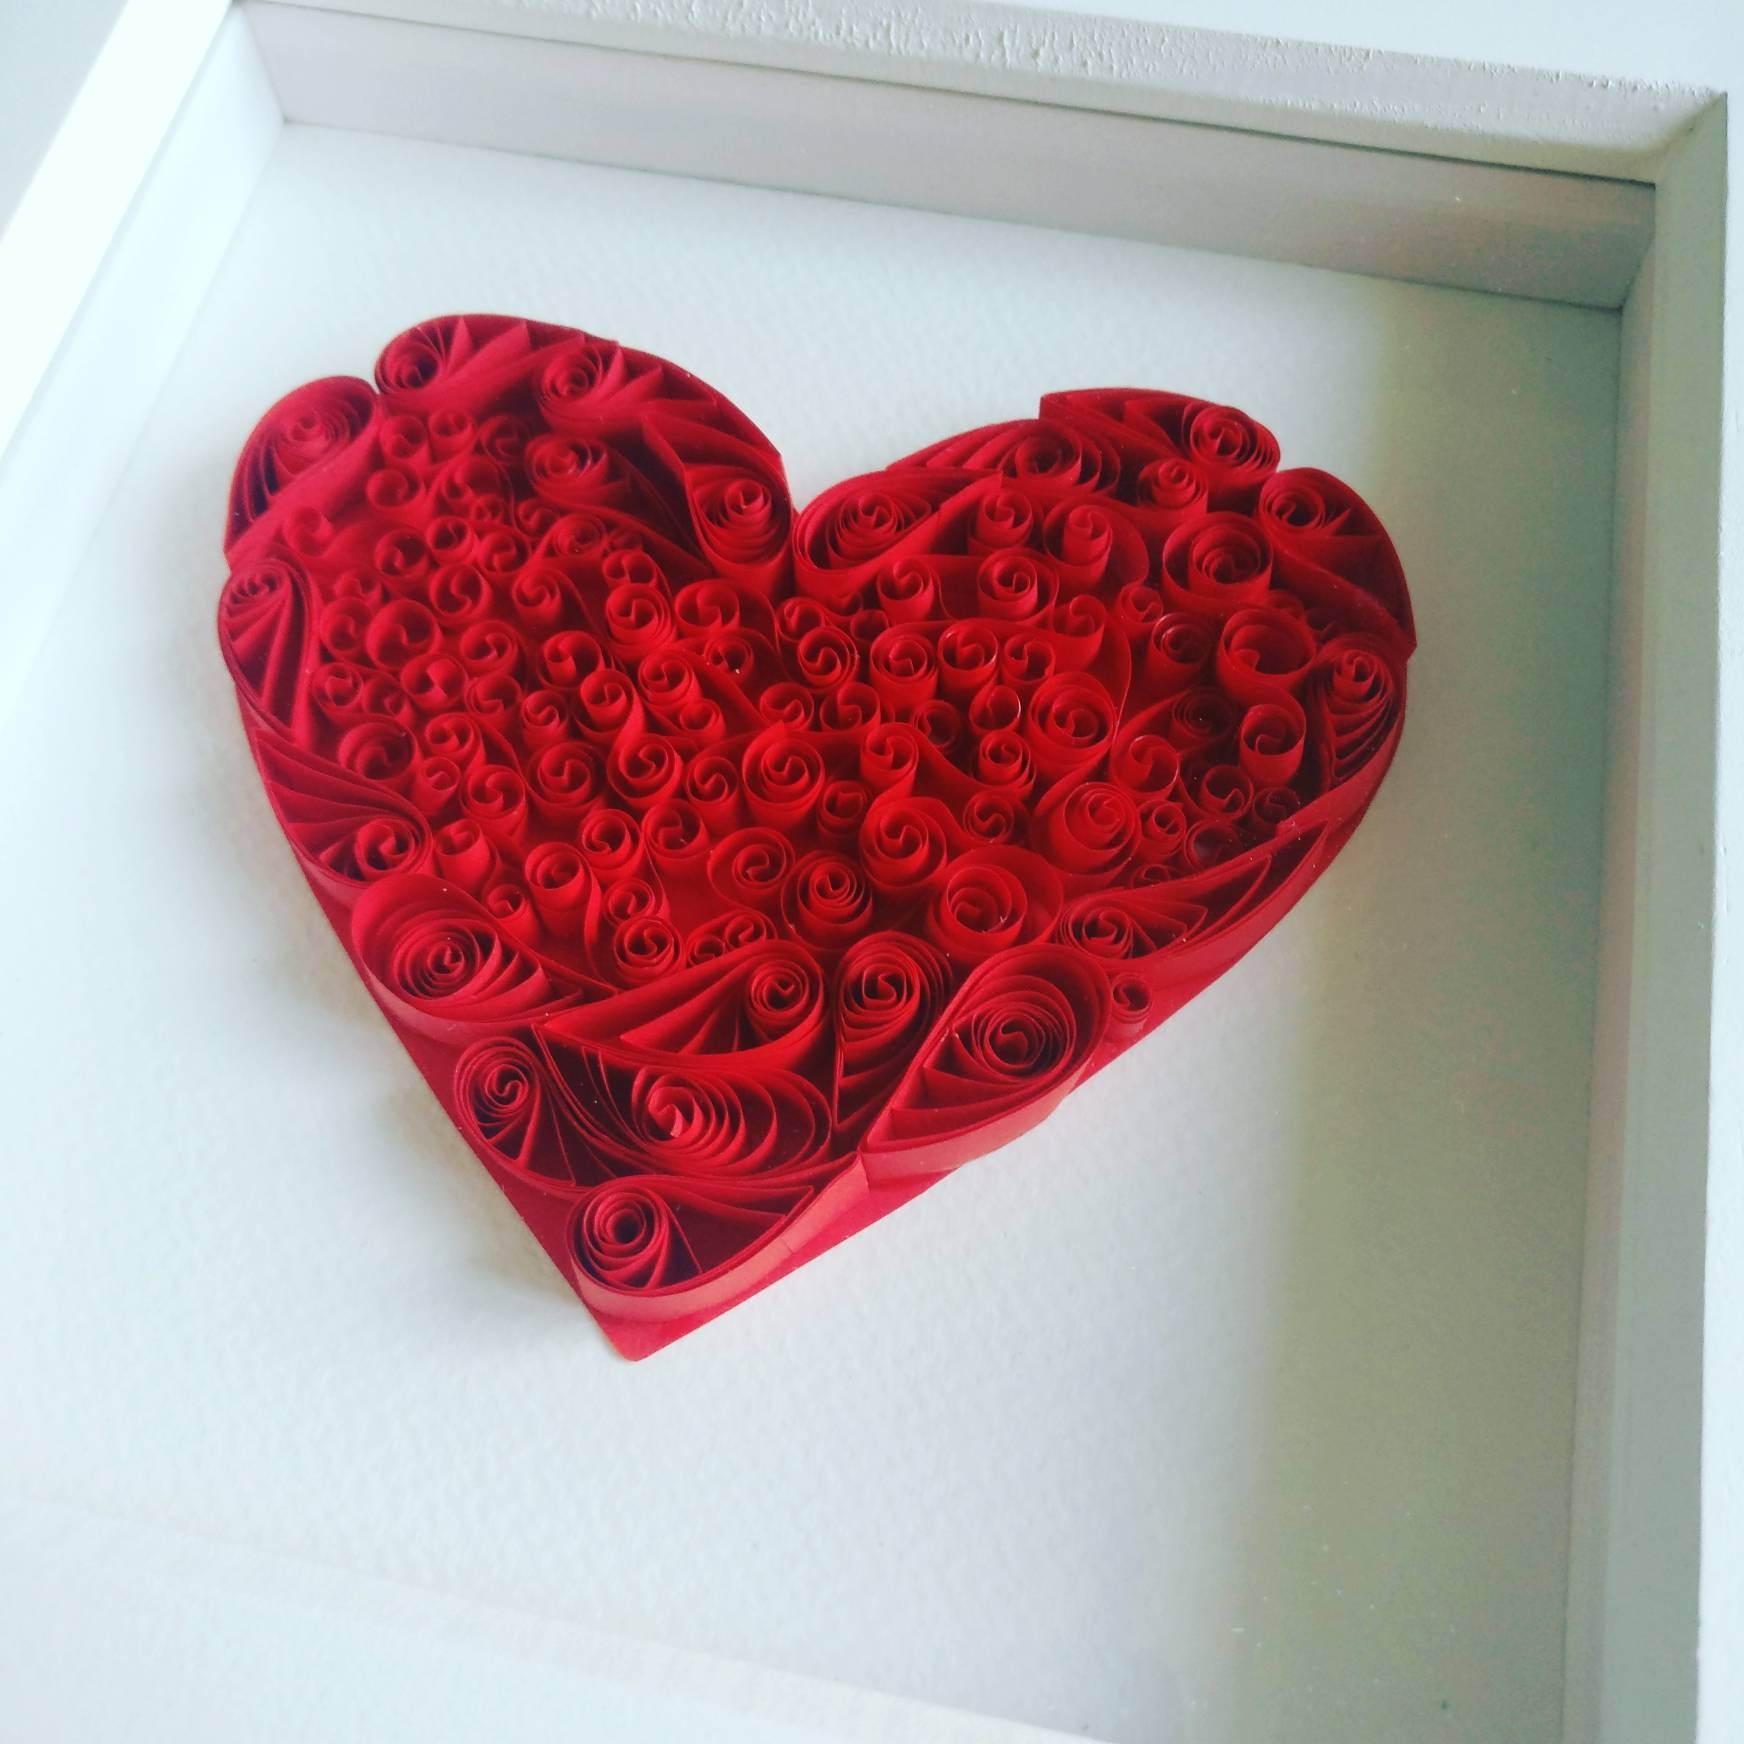 3d Original Art Quilled Art Love Heart Paper Quilling With Most Popular Heart 3d Wall Art (Gallery 8 of 20)